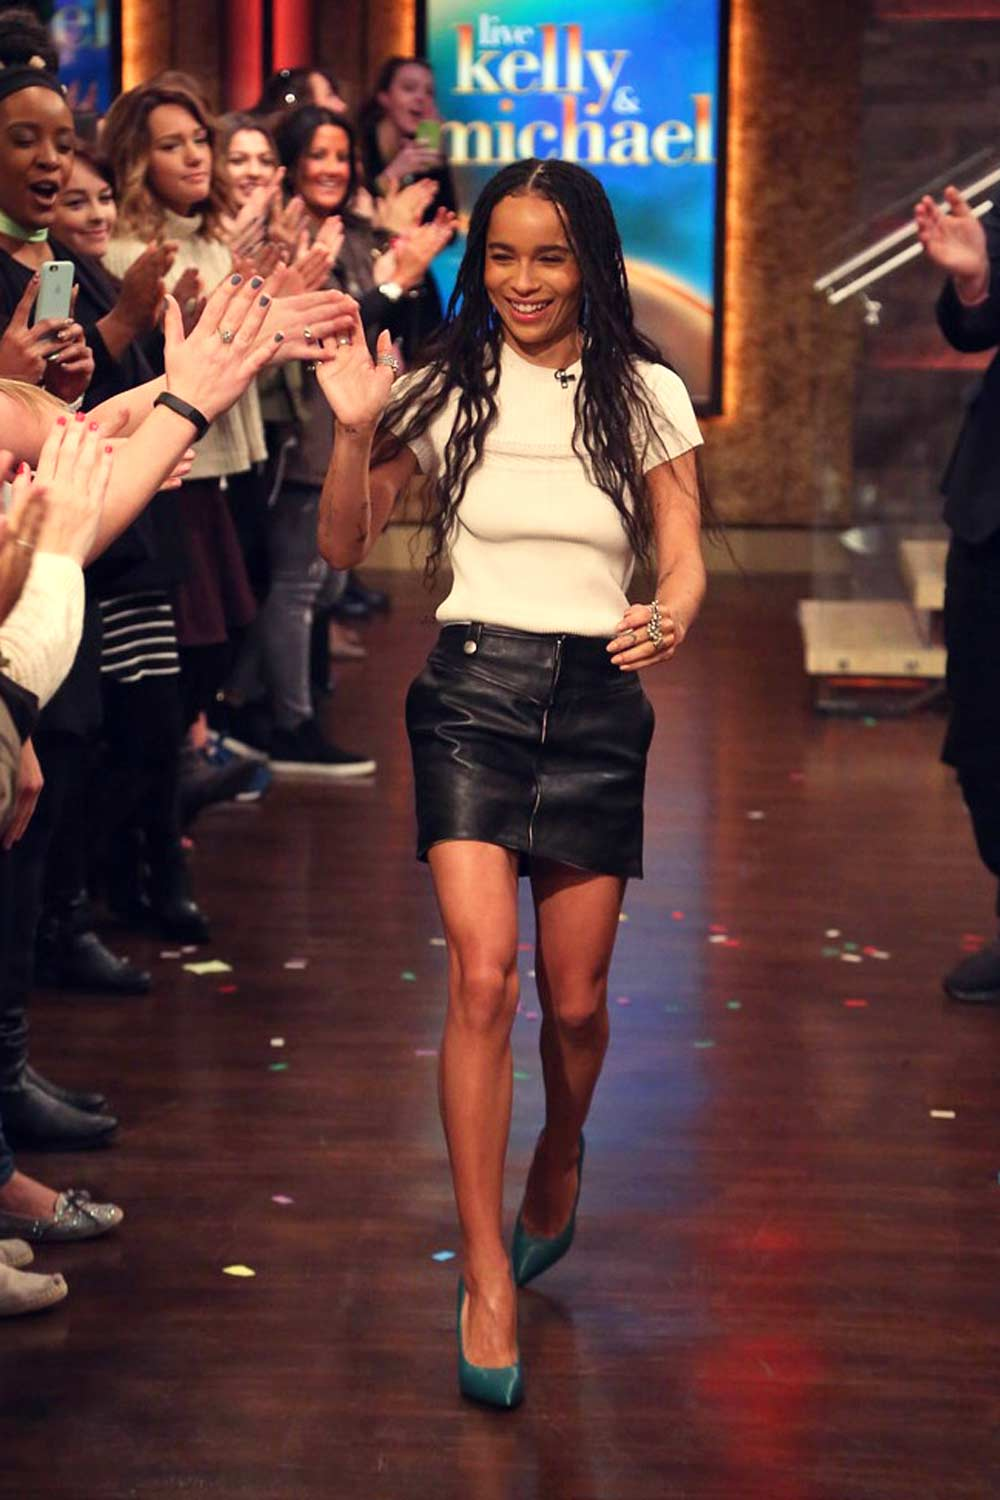 Zoe Kravitz making her way on stage at Live! With Kelly and Michael